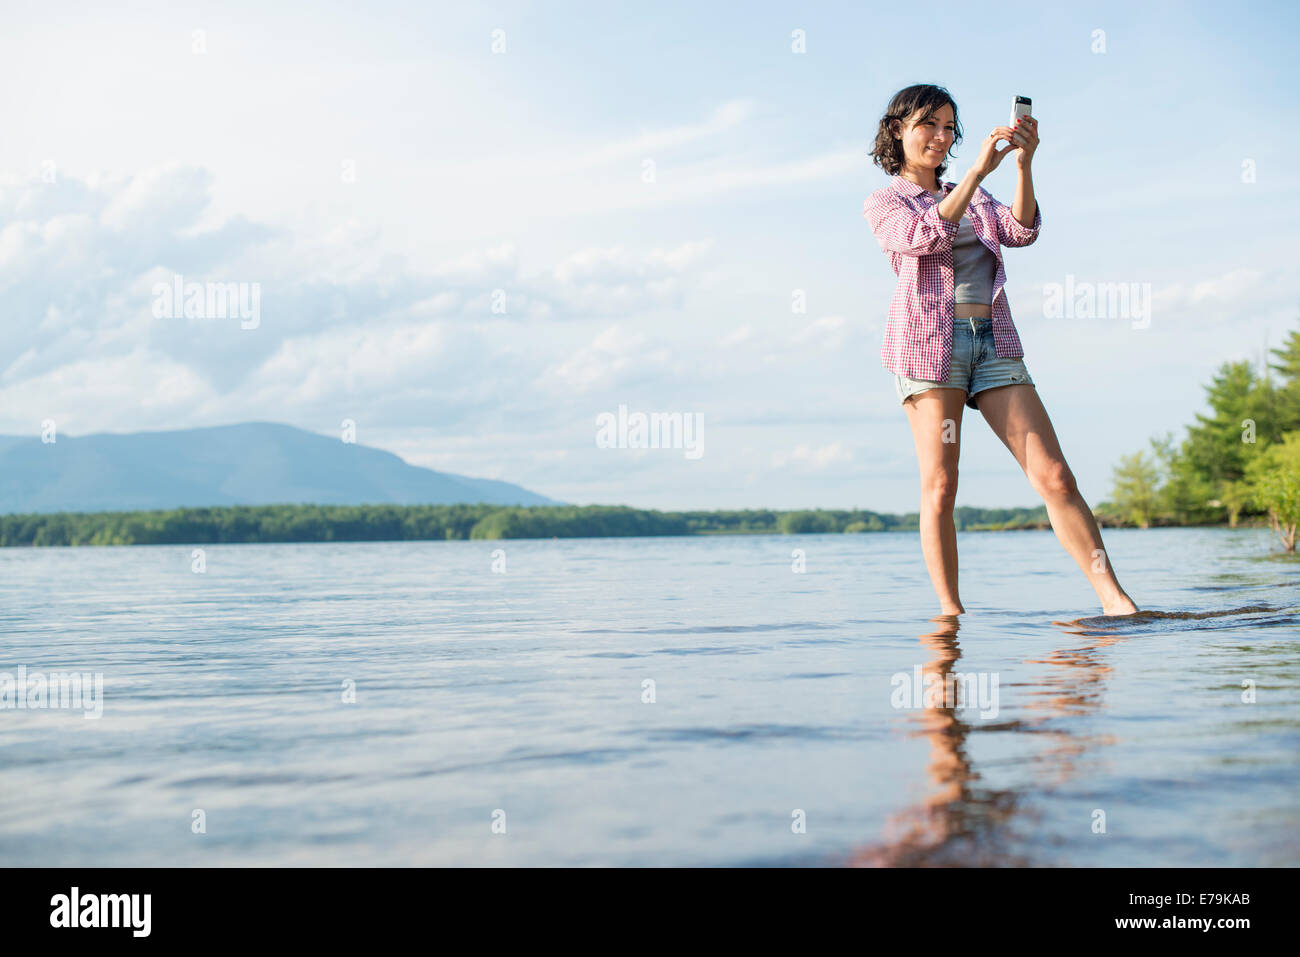 A woman standing in a lake in summer. Taking a photograph. - Stock Image